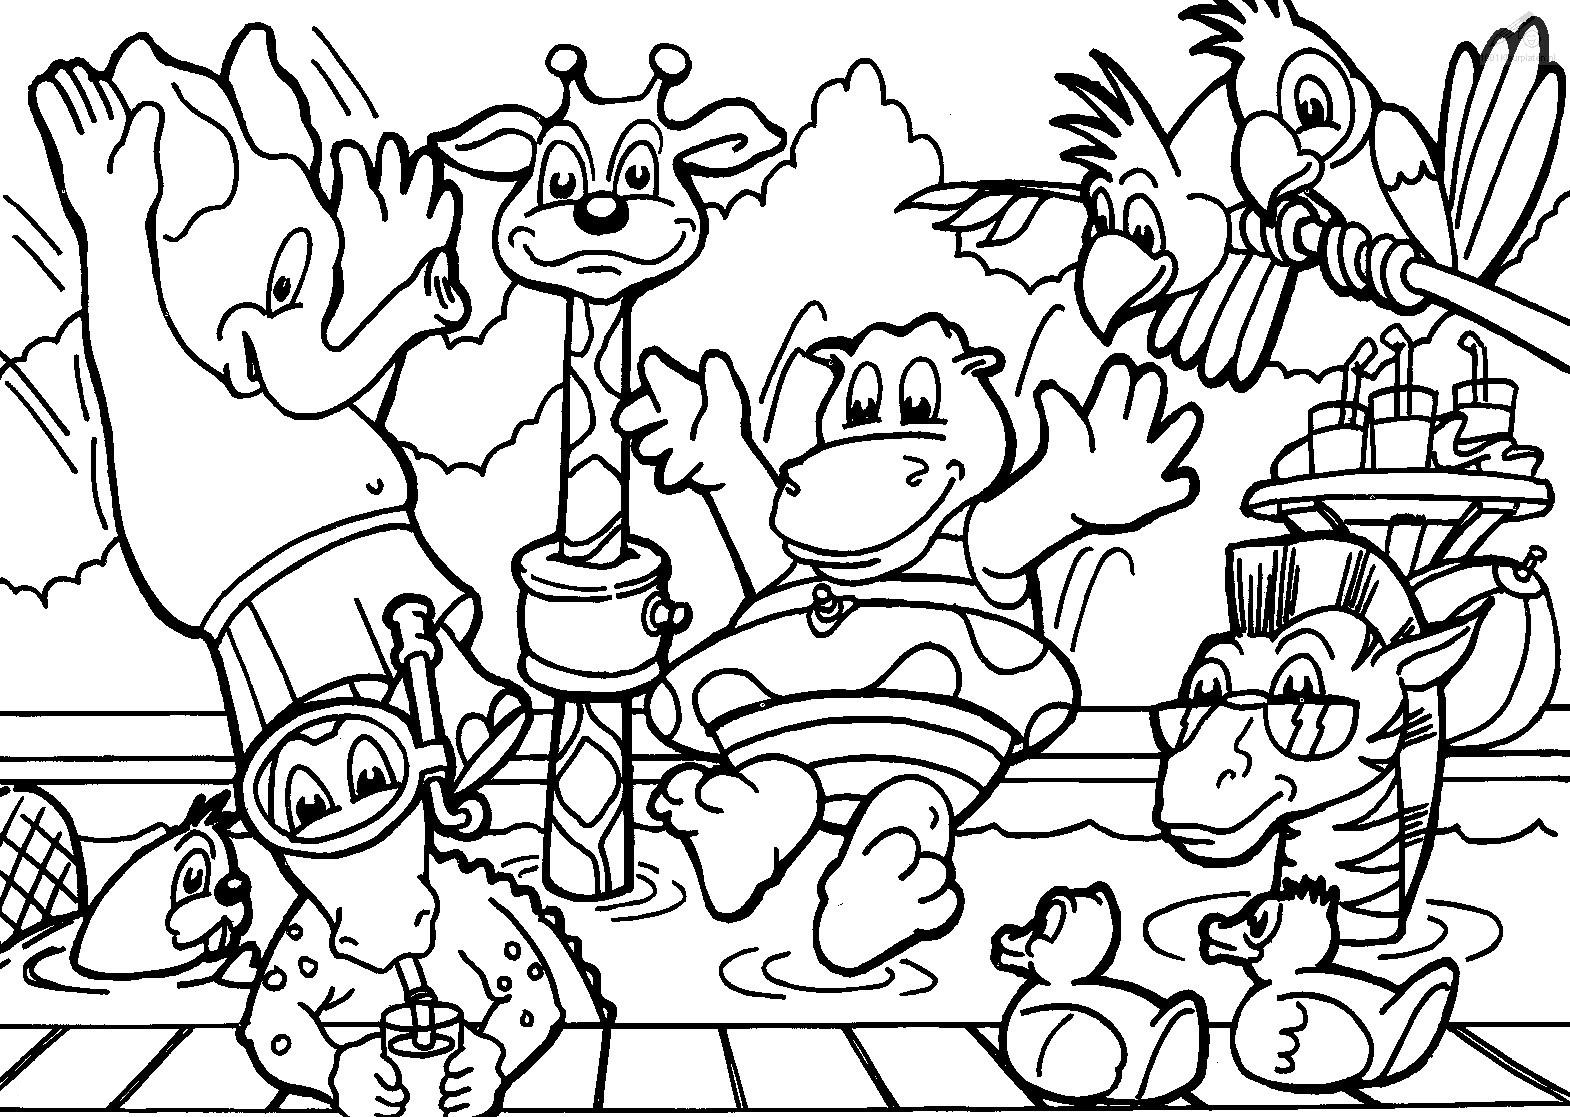 animal coloring pages for kids zebra coloring pages free printable kids coloring pages pages kids coloring for animal